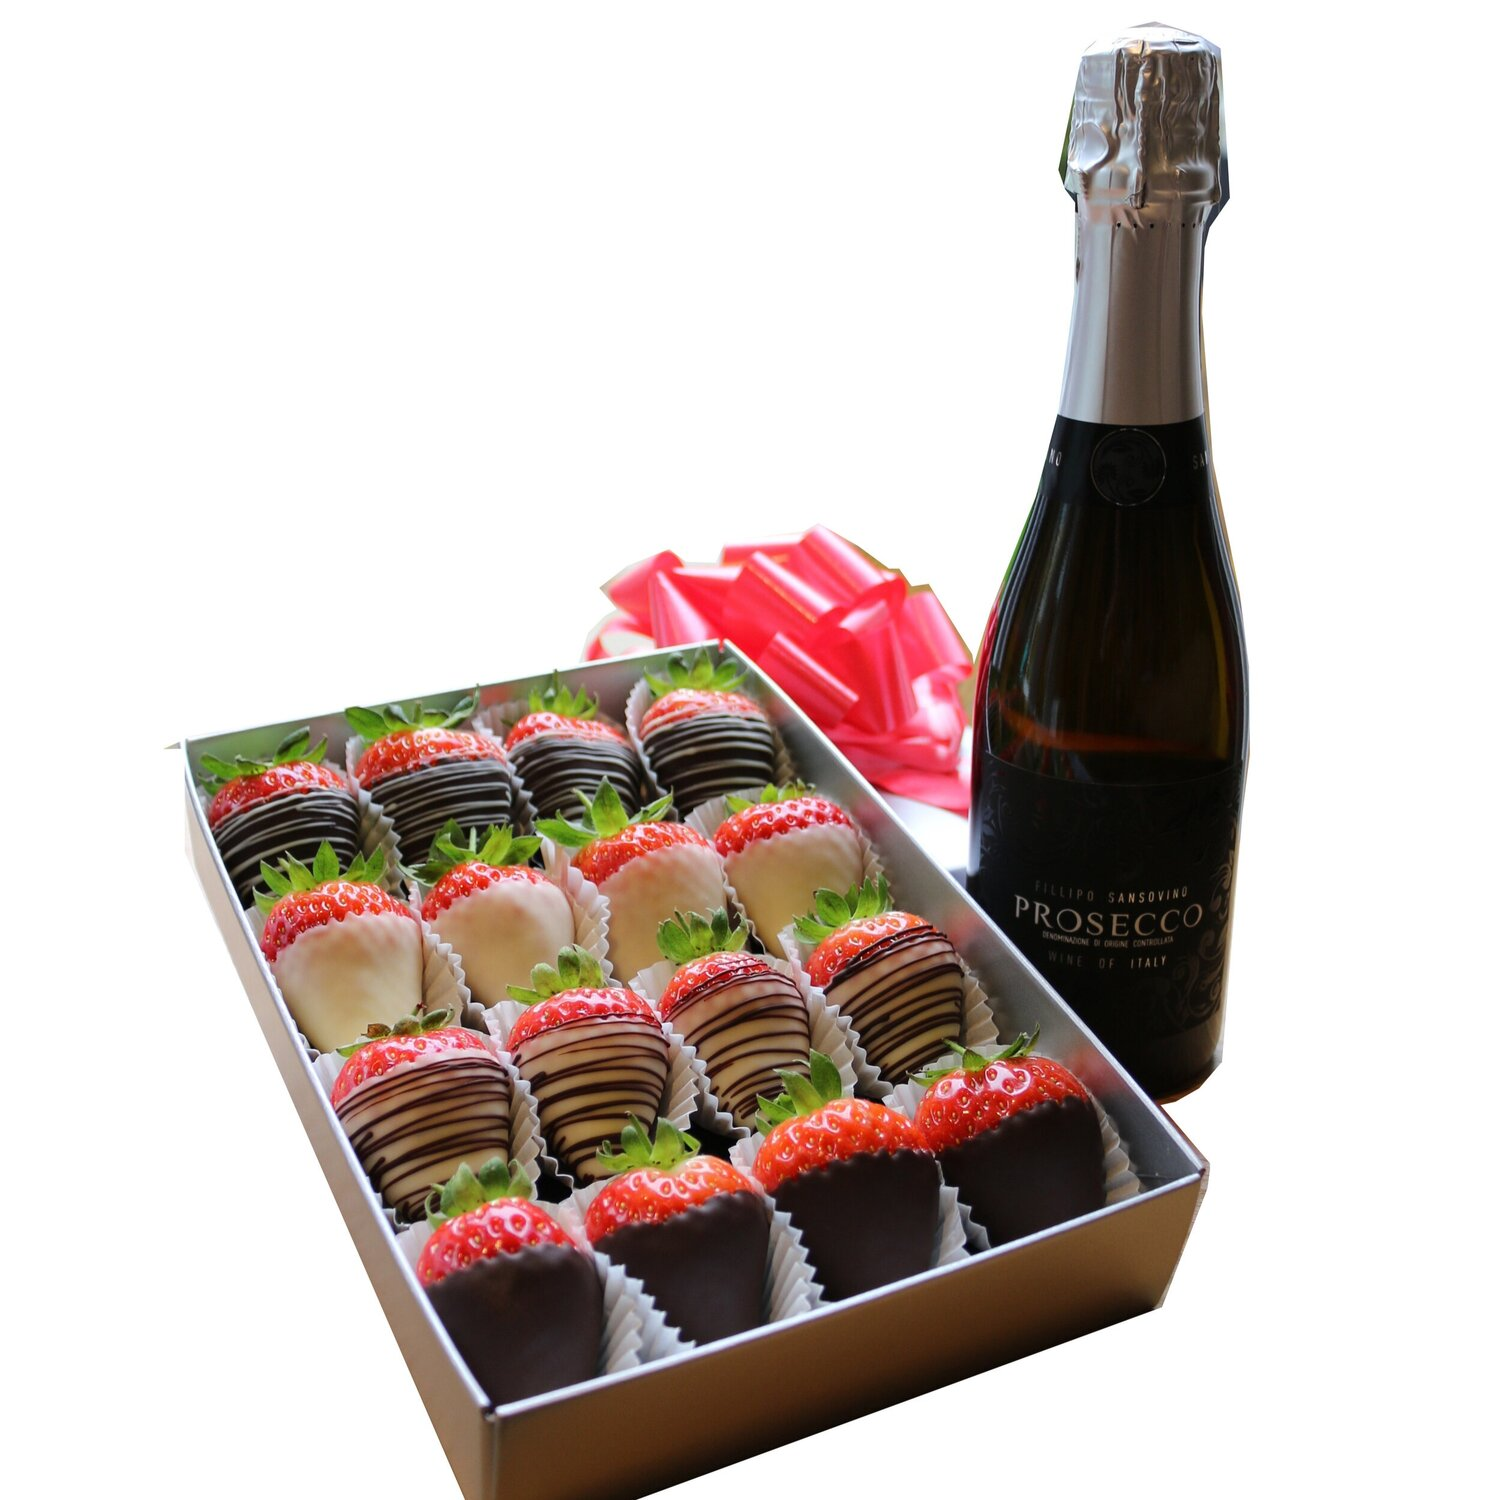 Chocolate Strawberries And Prosecco Perfect Gift Edible Bouquets Edible Gift Box Edible Arrangements Fruit Bouquets Gifts Selections Uk Delivery